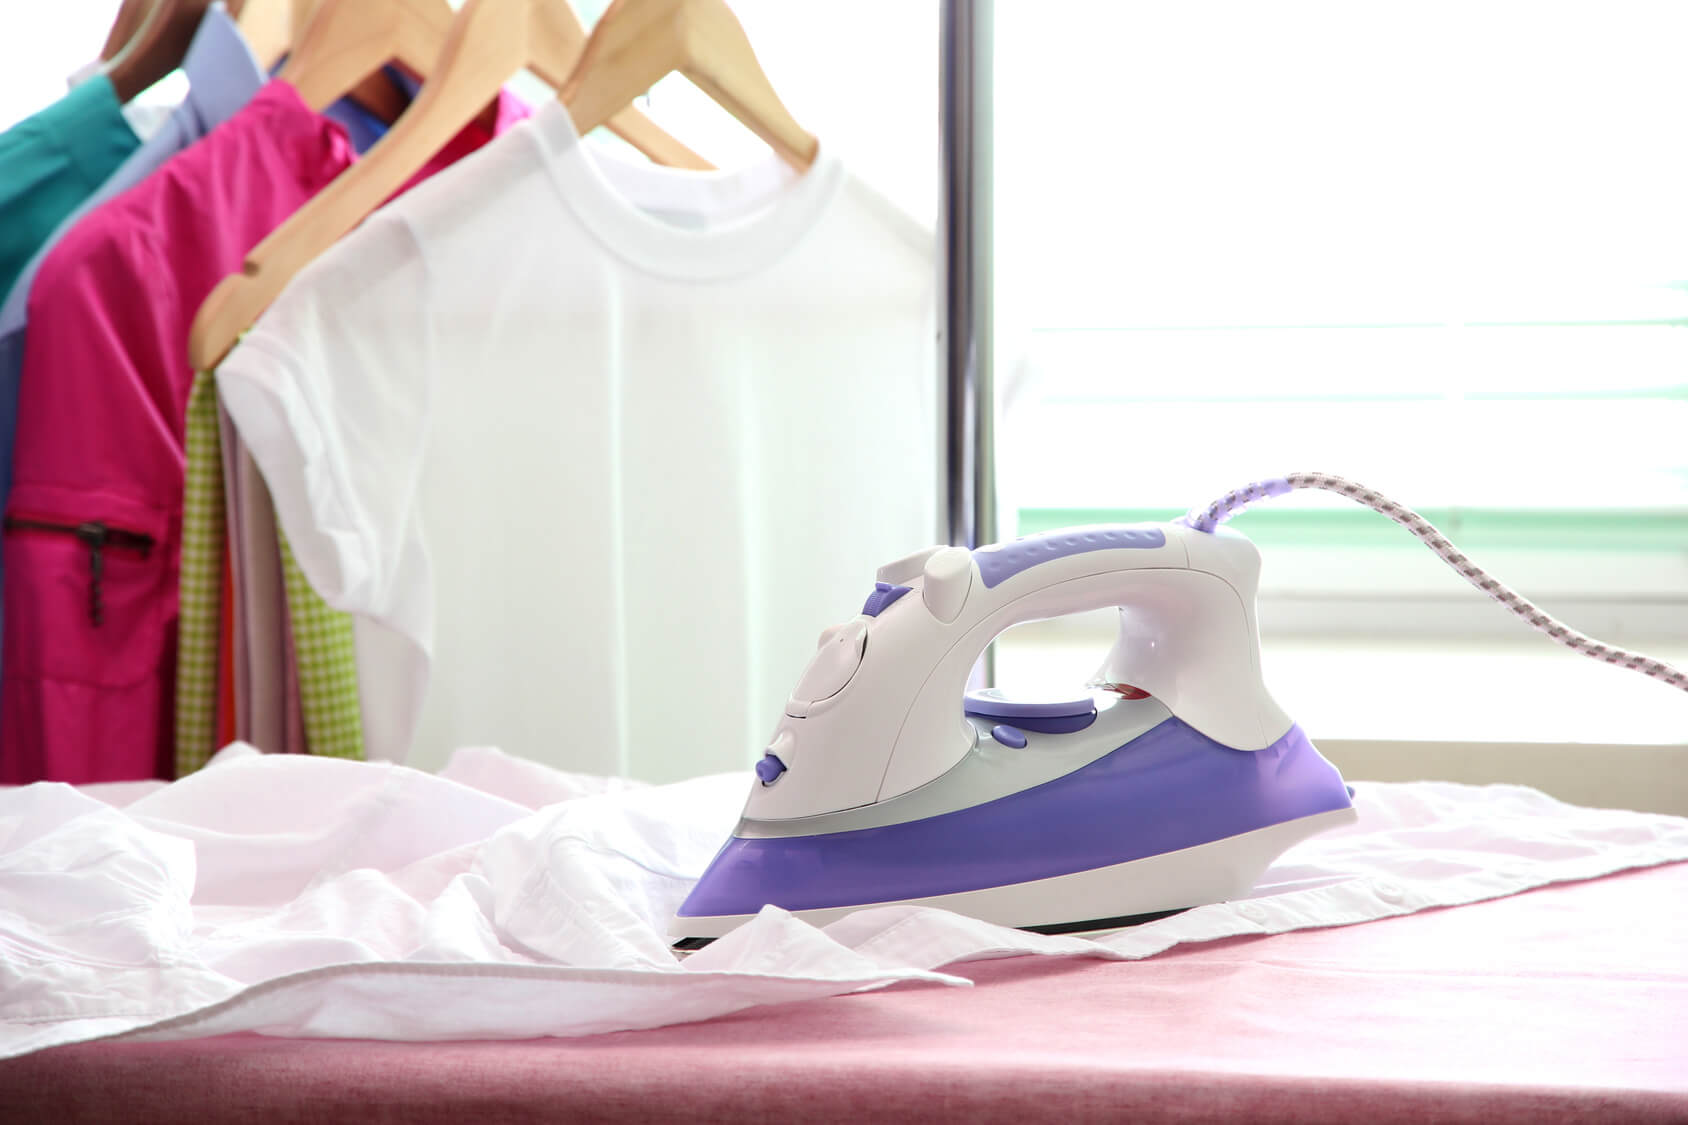 professional ironing services in London